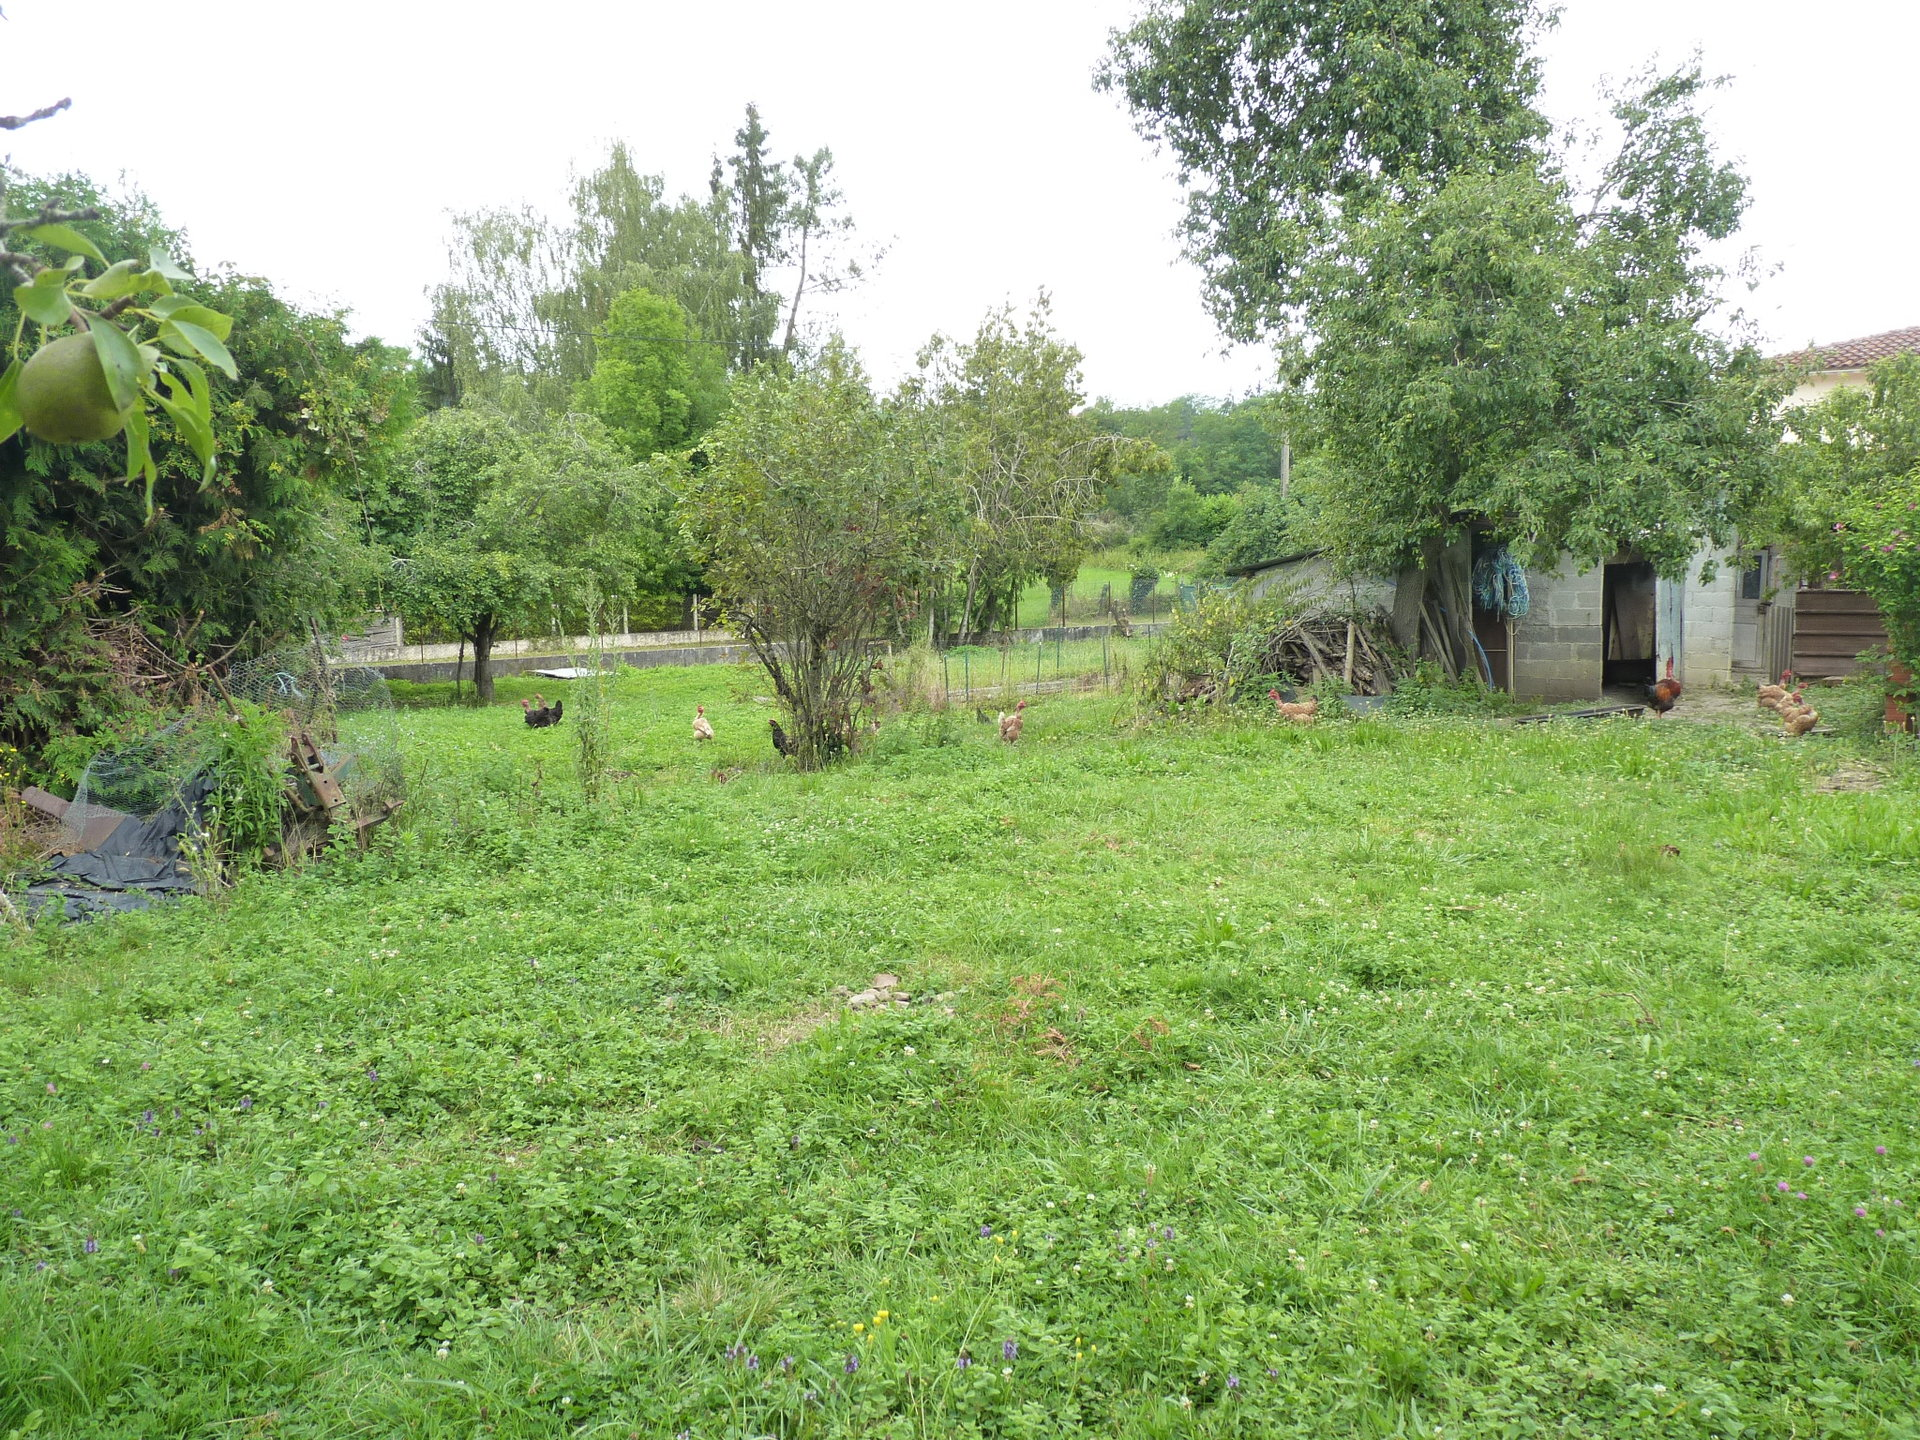 10 minutes from Aurignac, house with apartment on 1900 m² of building land